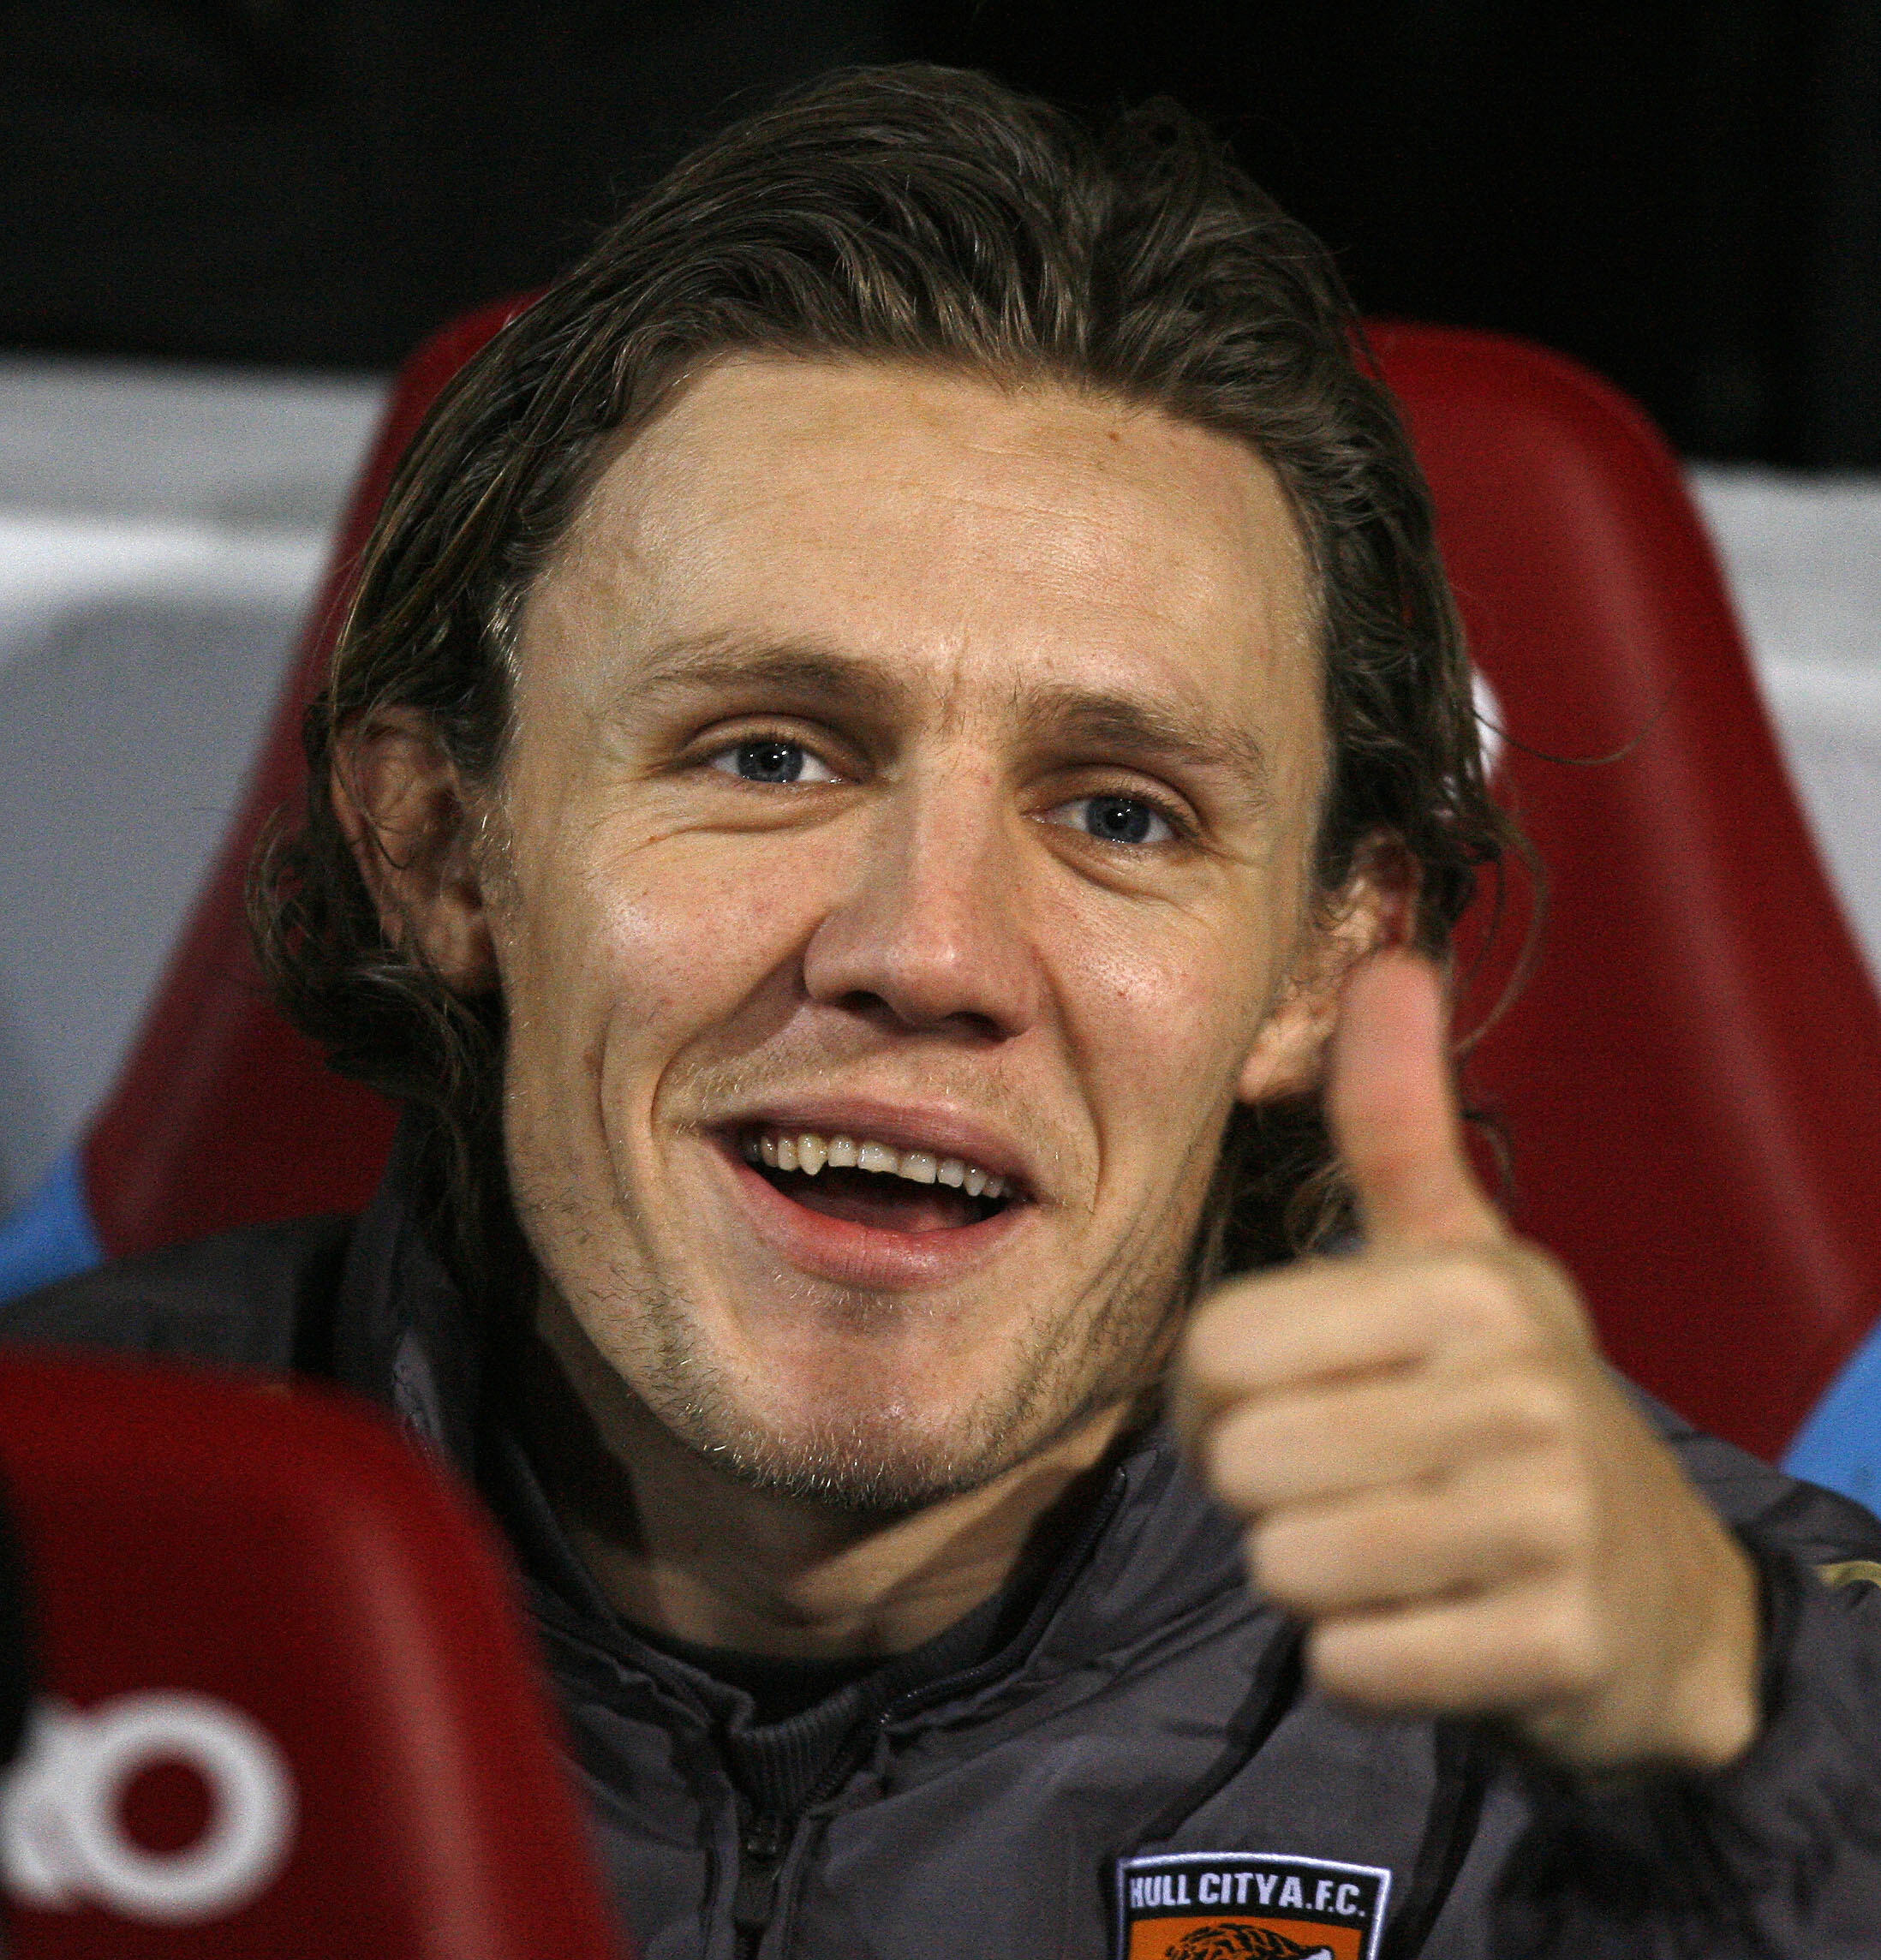 Jimmy Bullard reveals how Hull City overpaid him millions by mistake